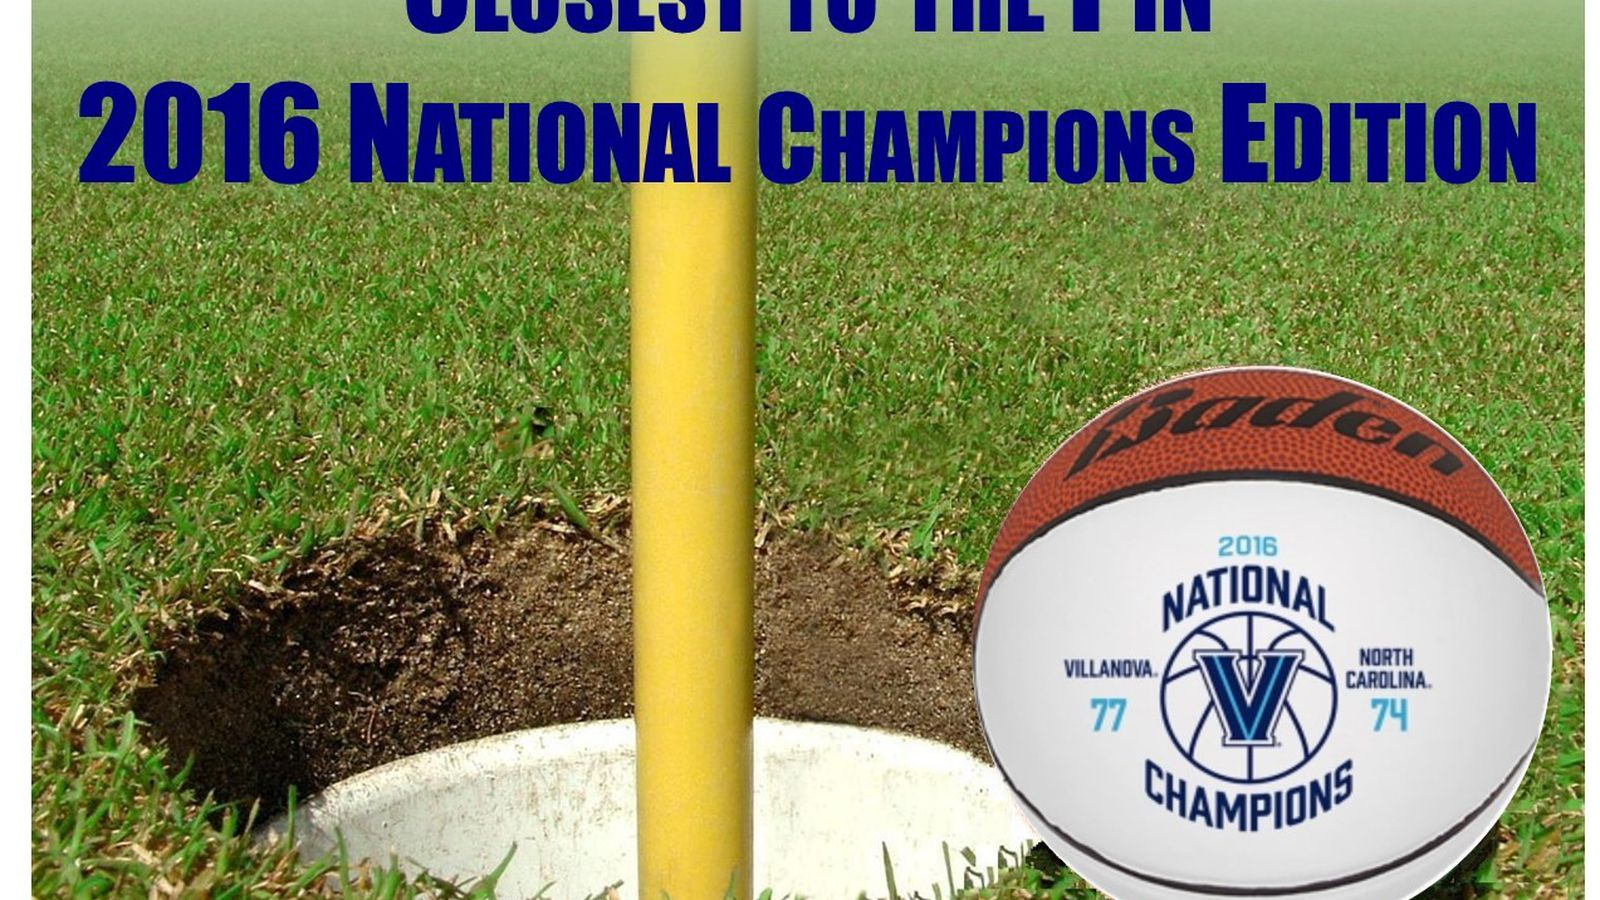 Closest_to_the_pin_logo_-_national_champs_edition.0.0